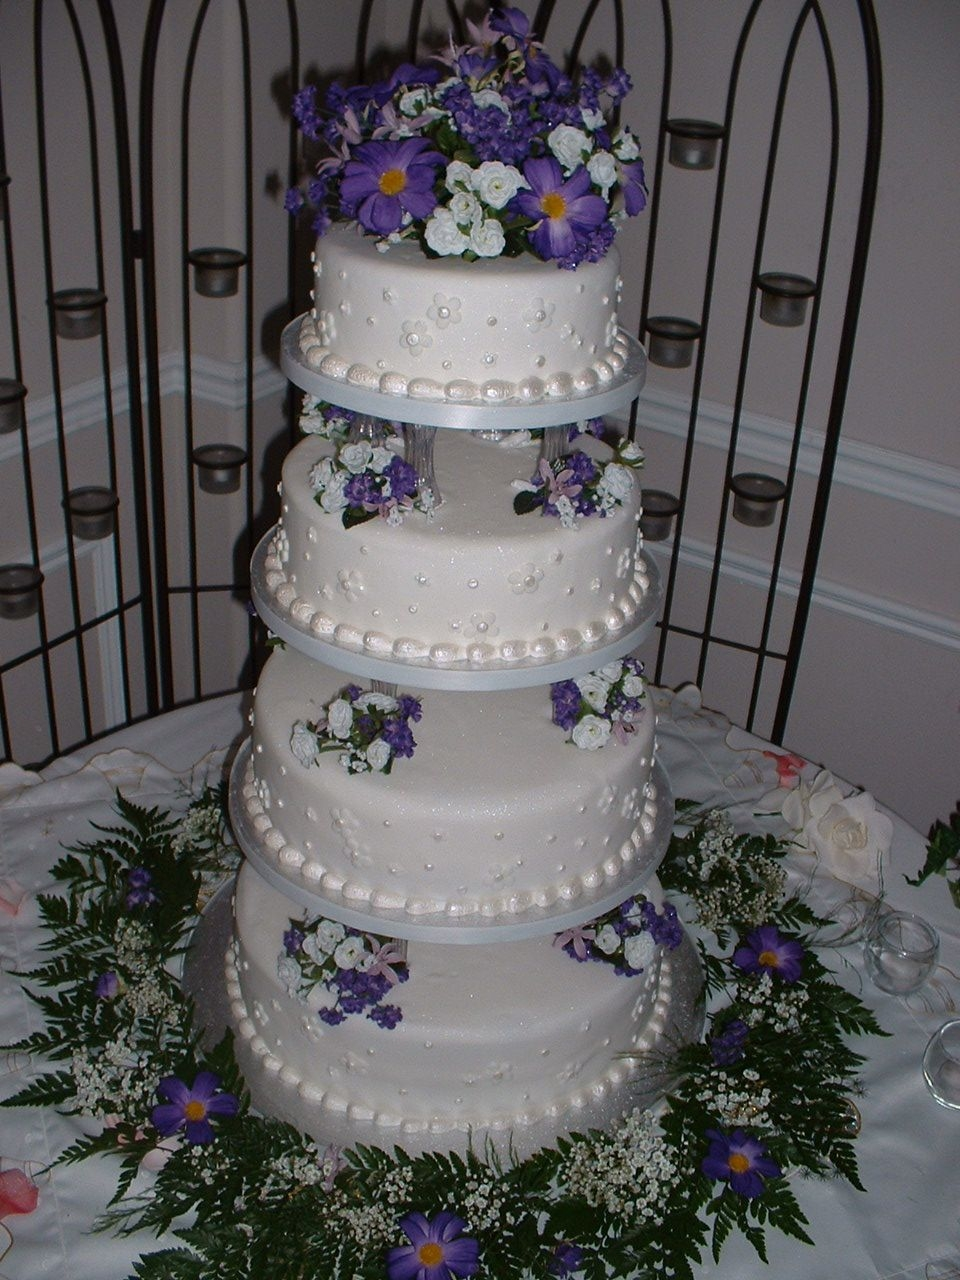 Purple Flowers Wedding Cake Four tiers made with push in pillars (top tier was artificial) and silk flowers. 14-12-10-8 inch tiers.